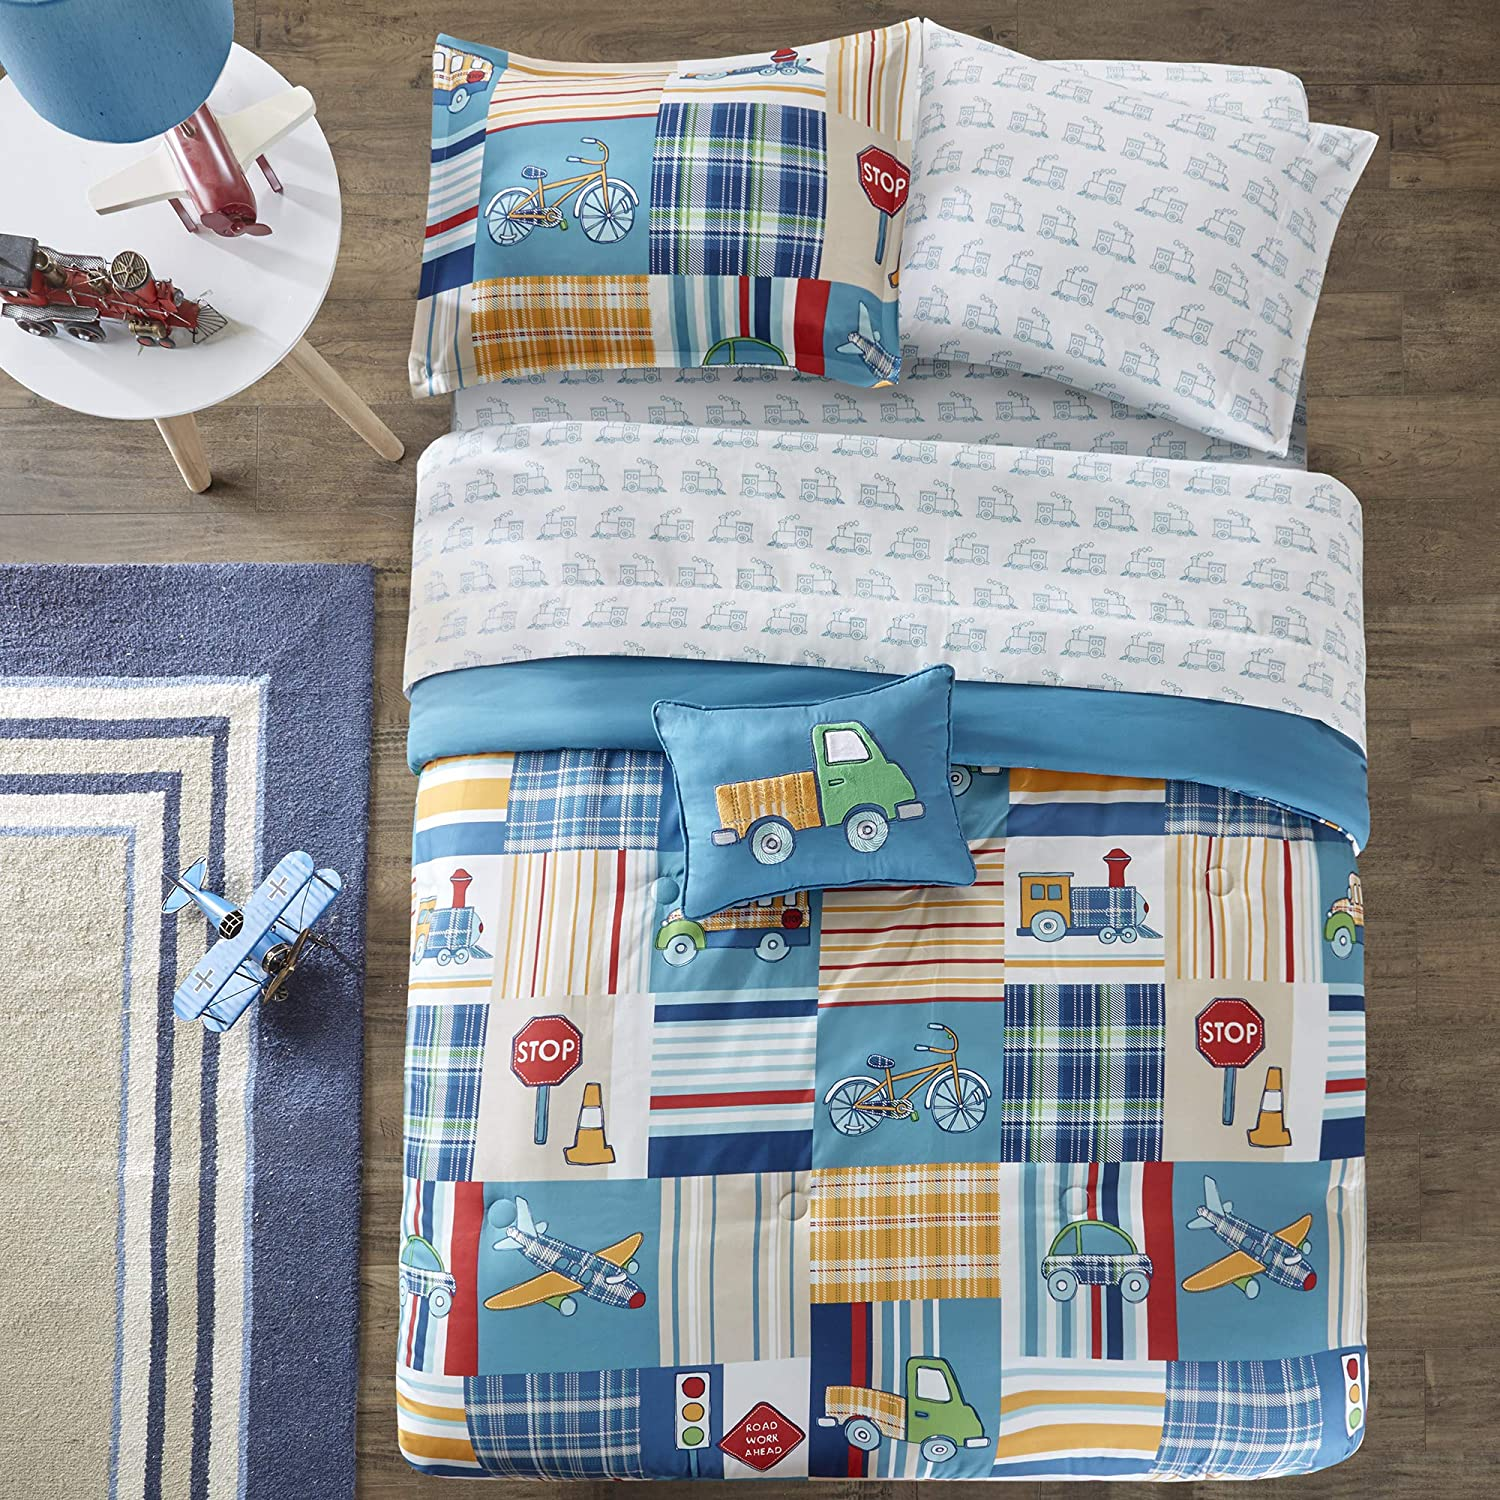 Mi Zone Kids Choo Choo Charlie Twin Kids Bedding Sets for Boys - Blue, Parchwork Trains, Plane, Plaid – 6 Pieces Boy Comforter Set – Ultra Soft Microfiber Kid Childrens Bedroom Comforters